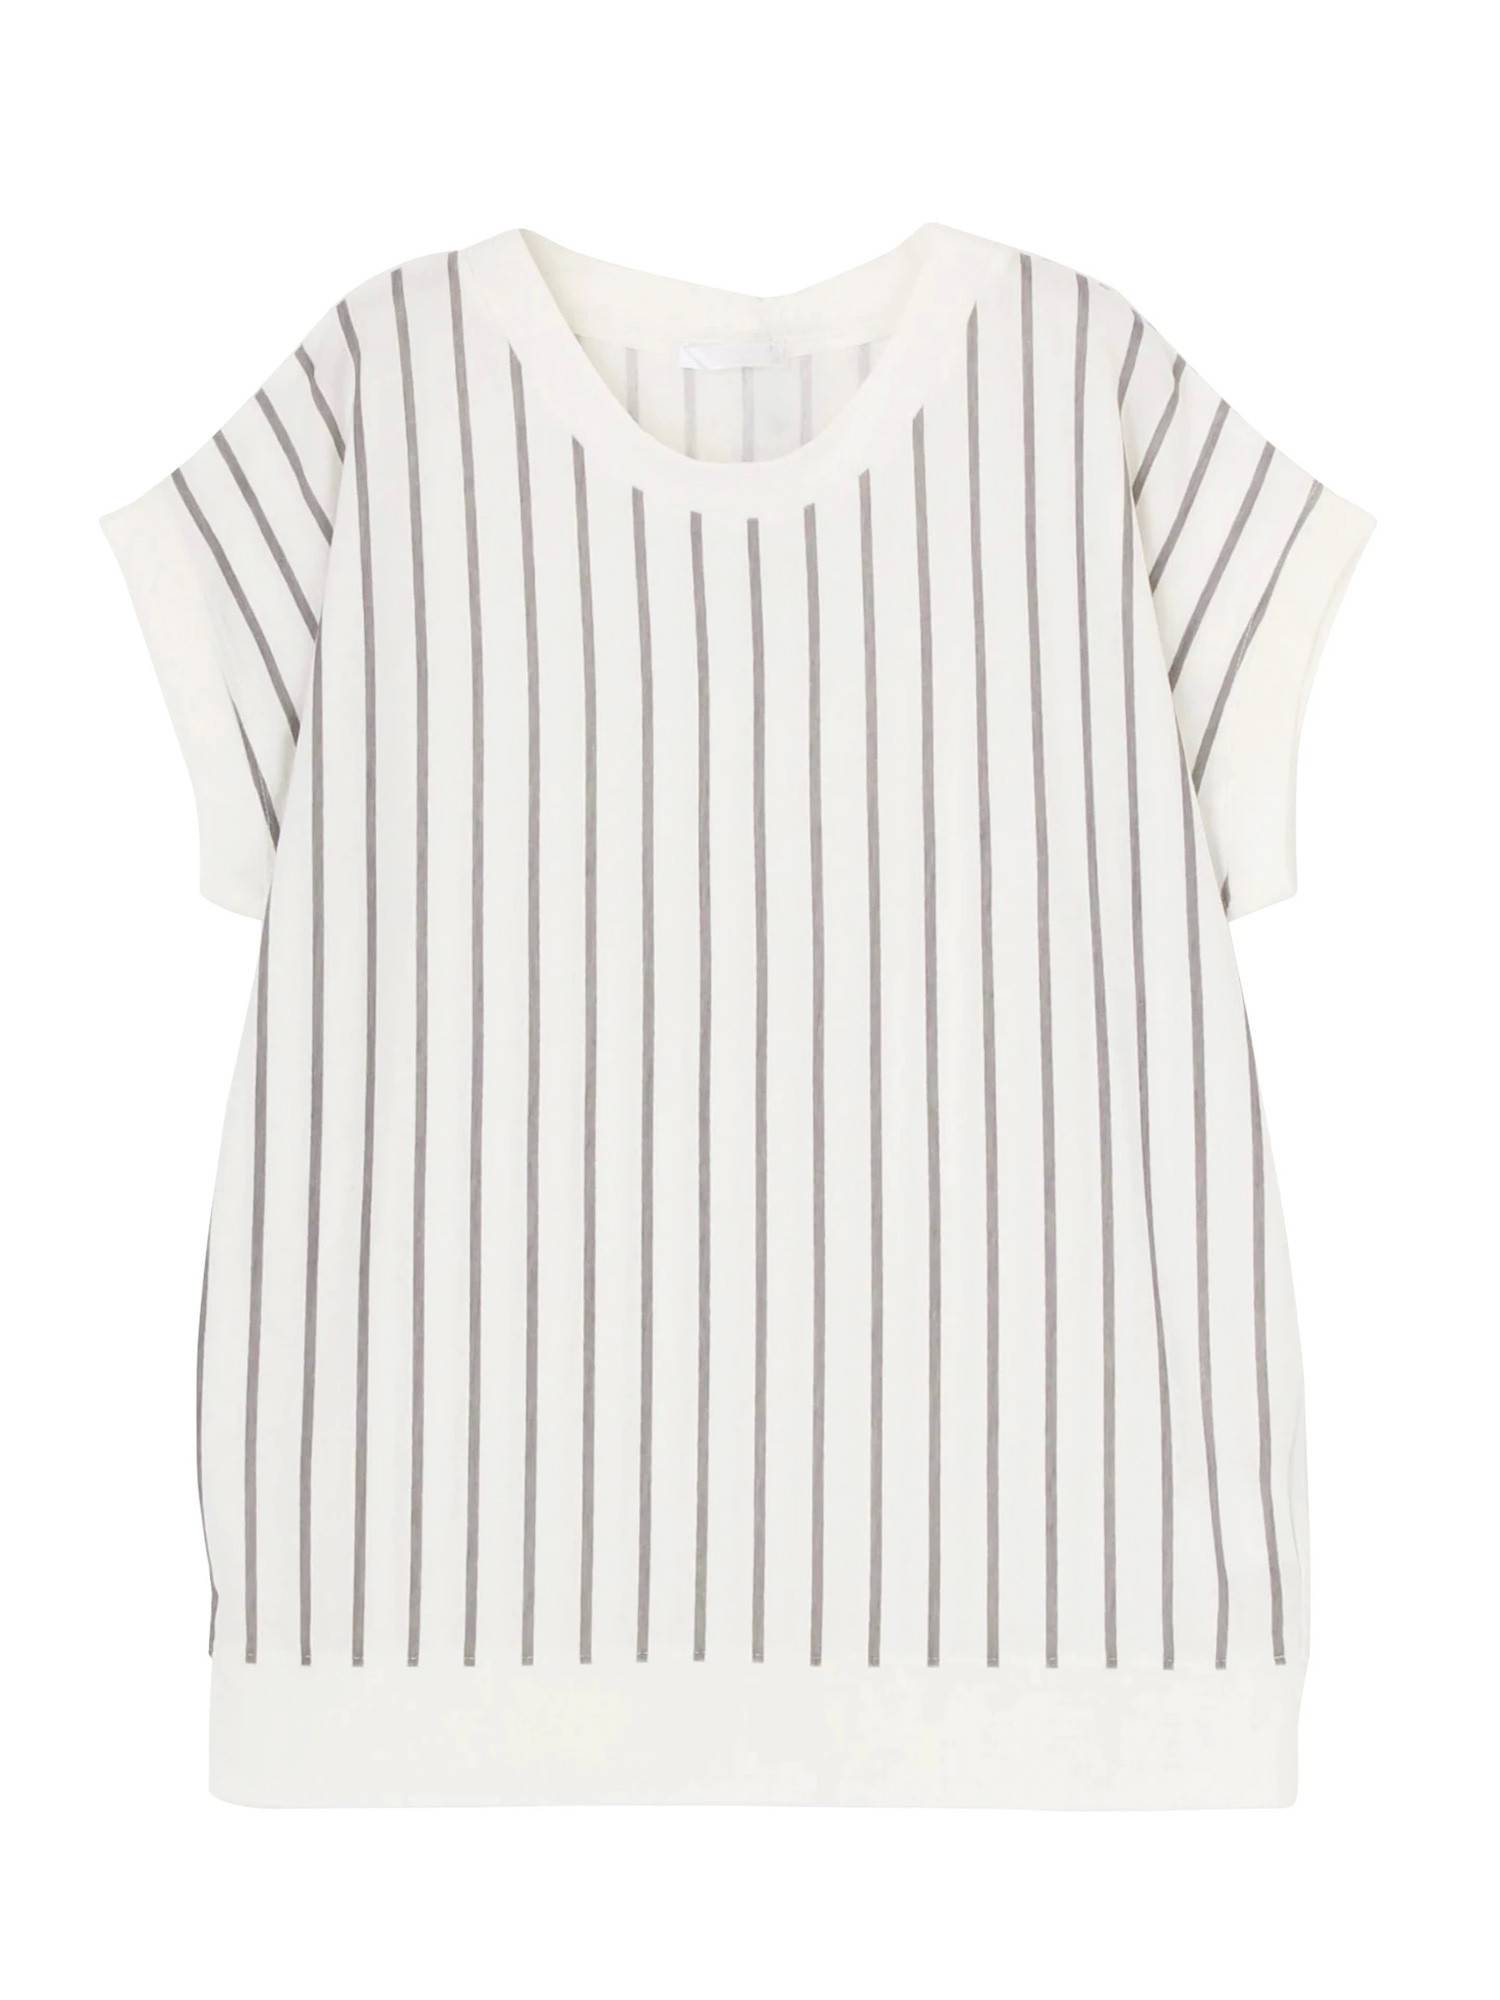 [MURUA] stripe T-shirt